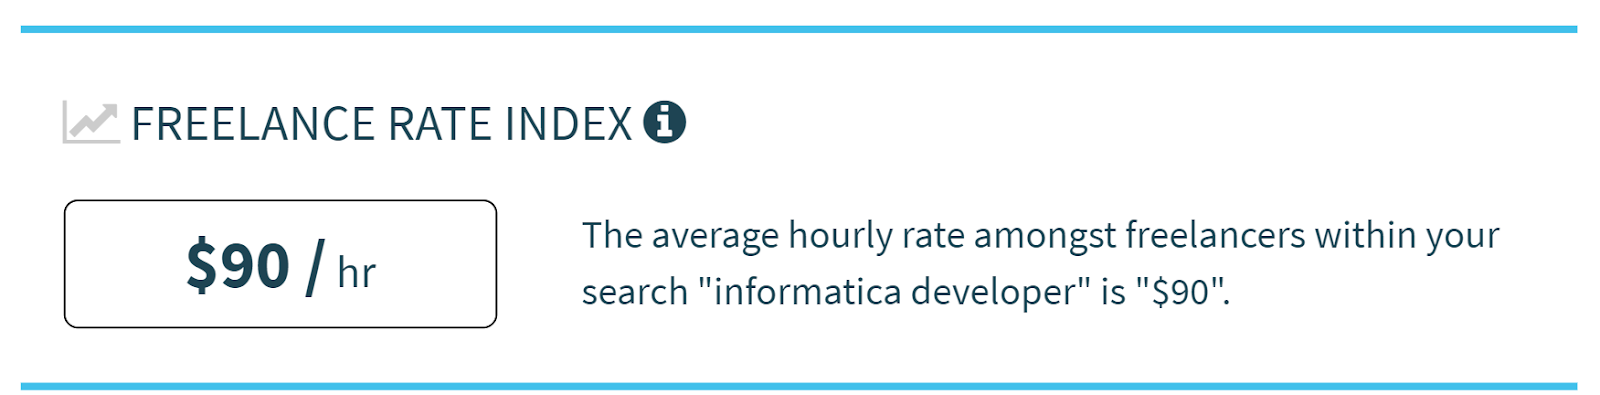 Average Hourly Rate of Freelance Informatica Developers